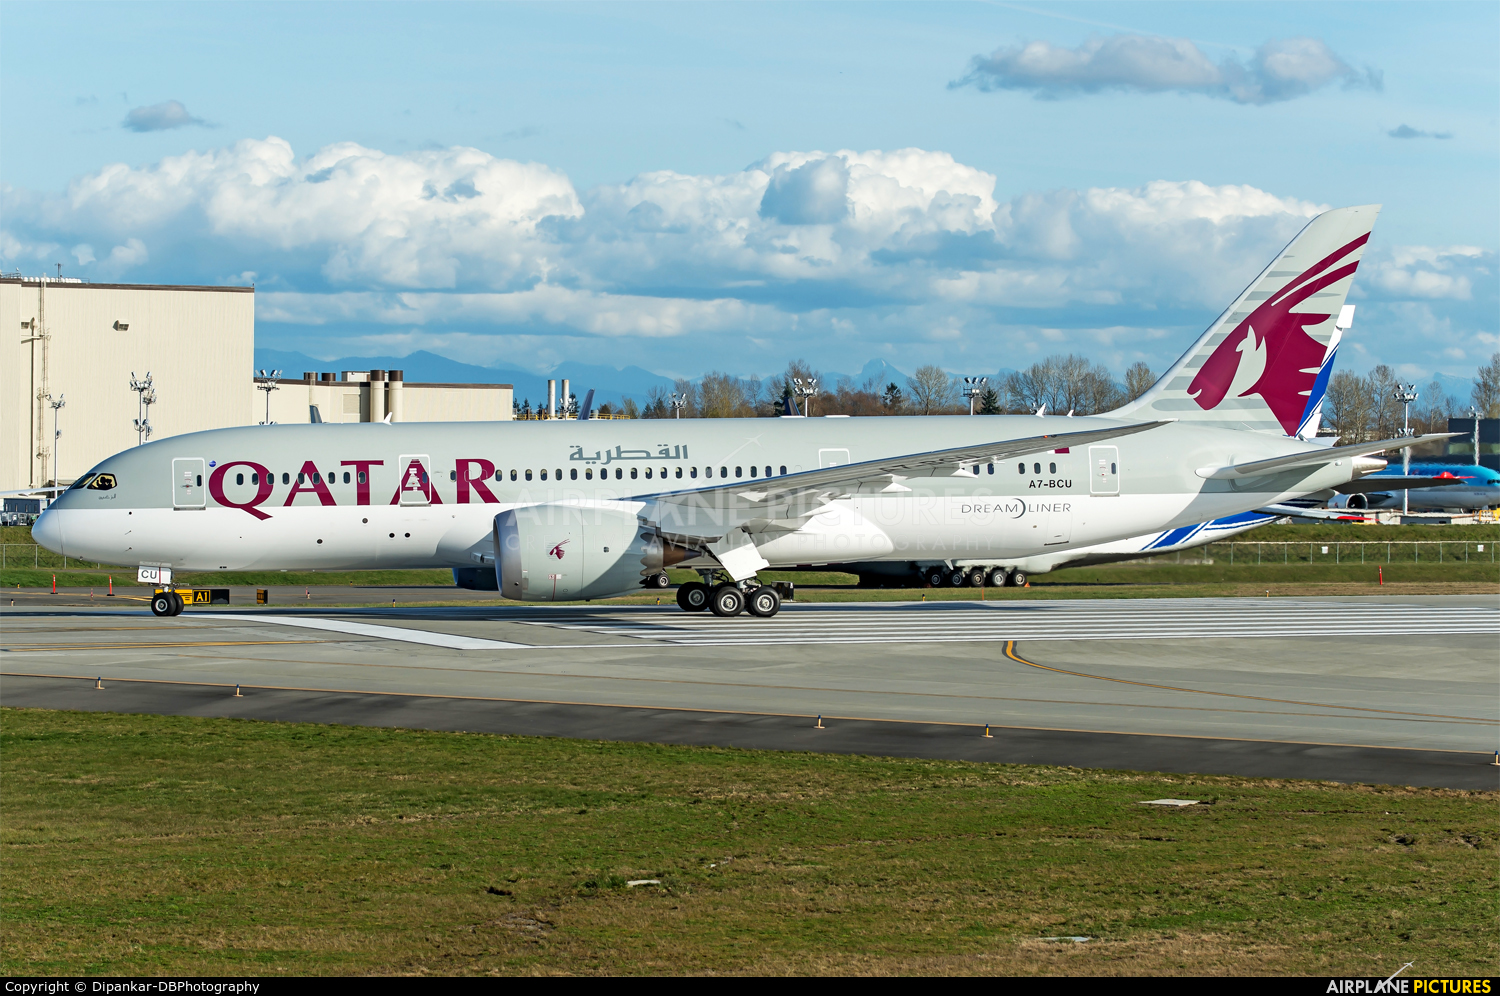 Qatar Airways A7-BCU aircraft at Everett - Snohomish County / Paine Field